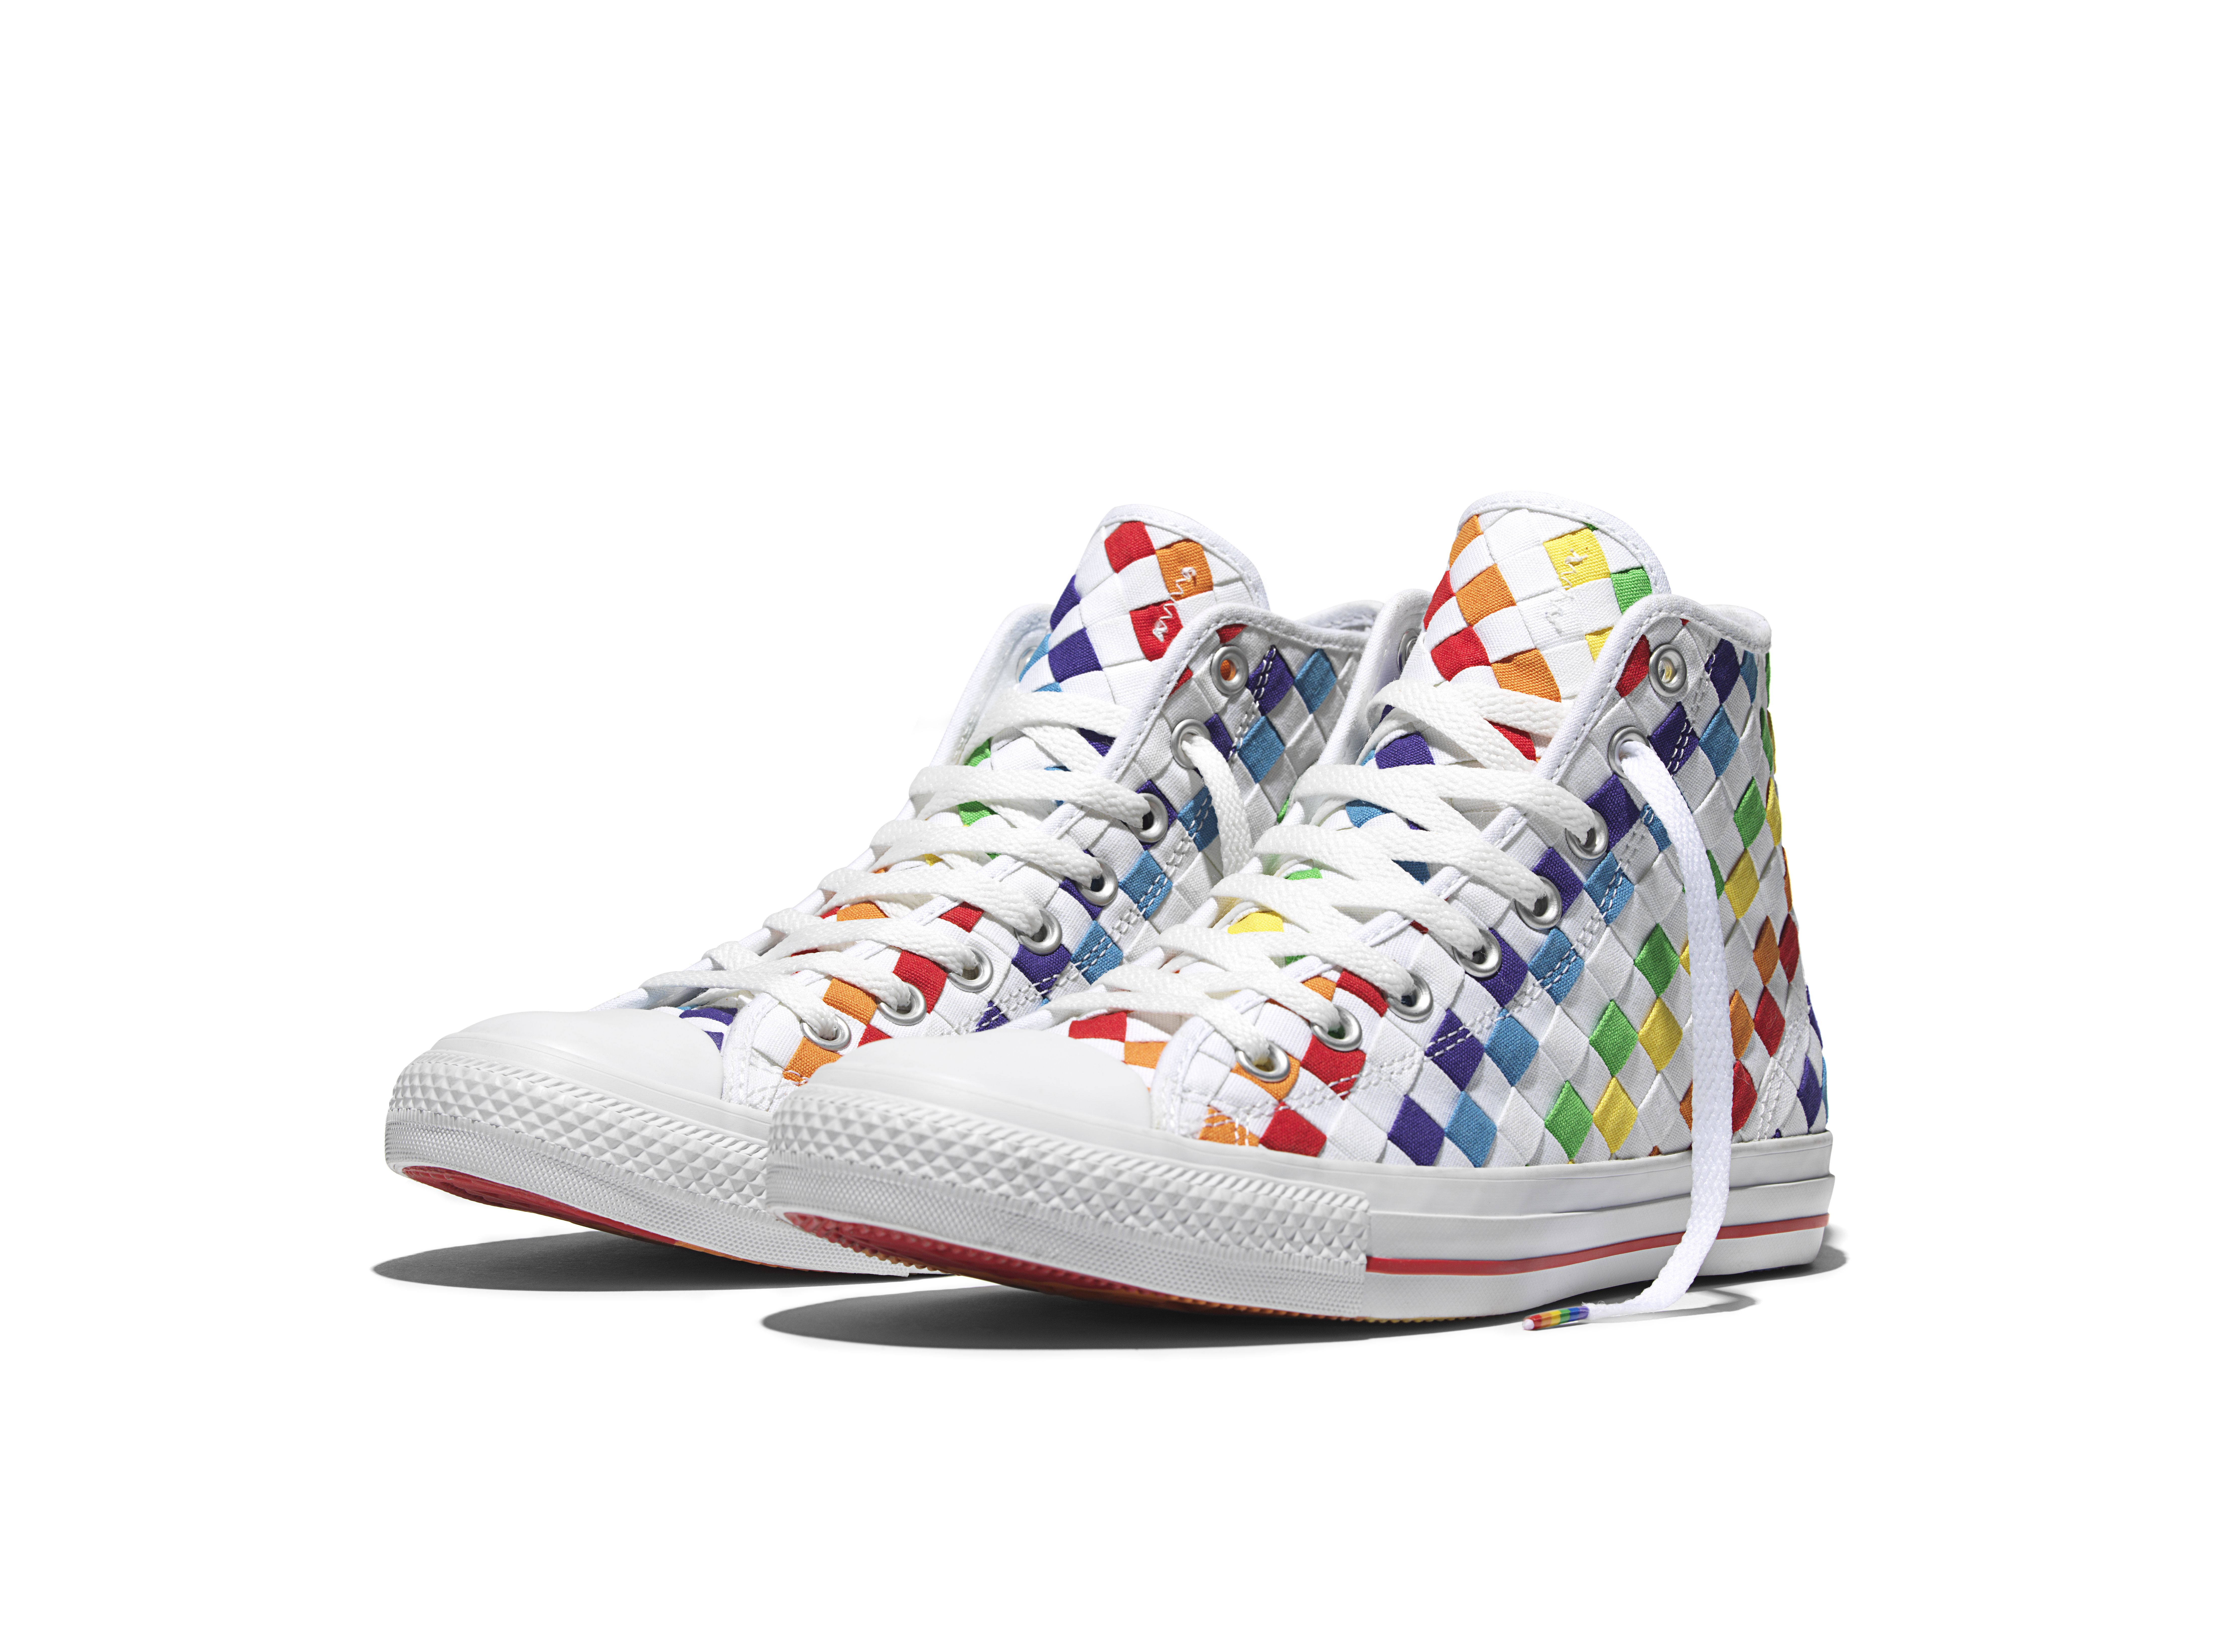 d908cab5ebe2 THE 2016 CONVERSE PRIDE COLLECTION CELEBRATES THE CREATIVITY OF ALL ...